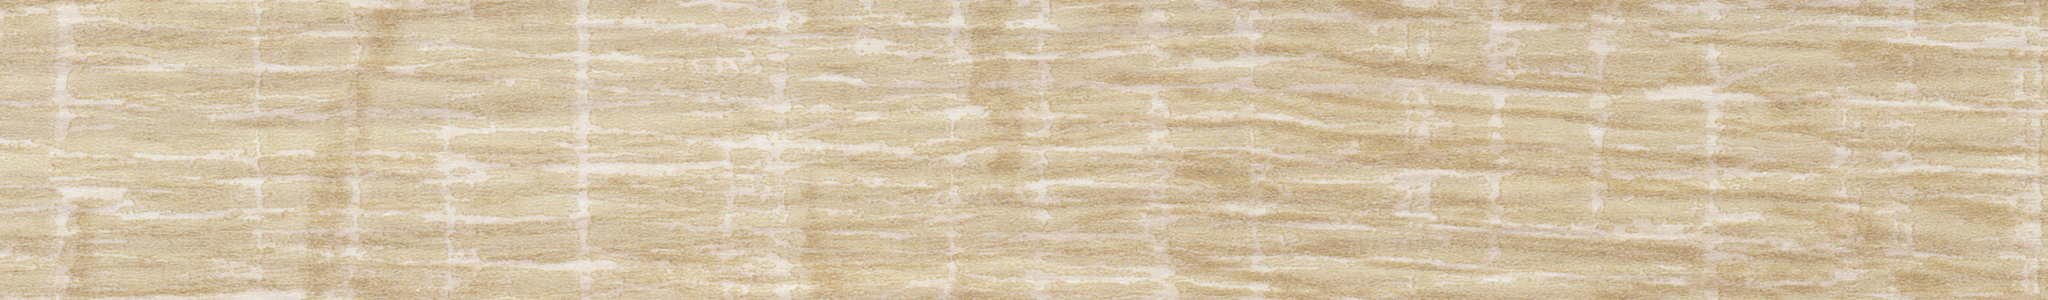 HD 641145 Melamine Edge FALZ Oak Smooth